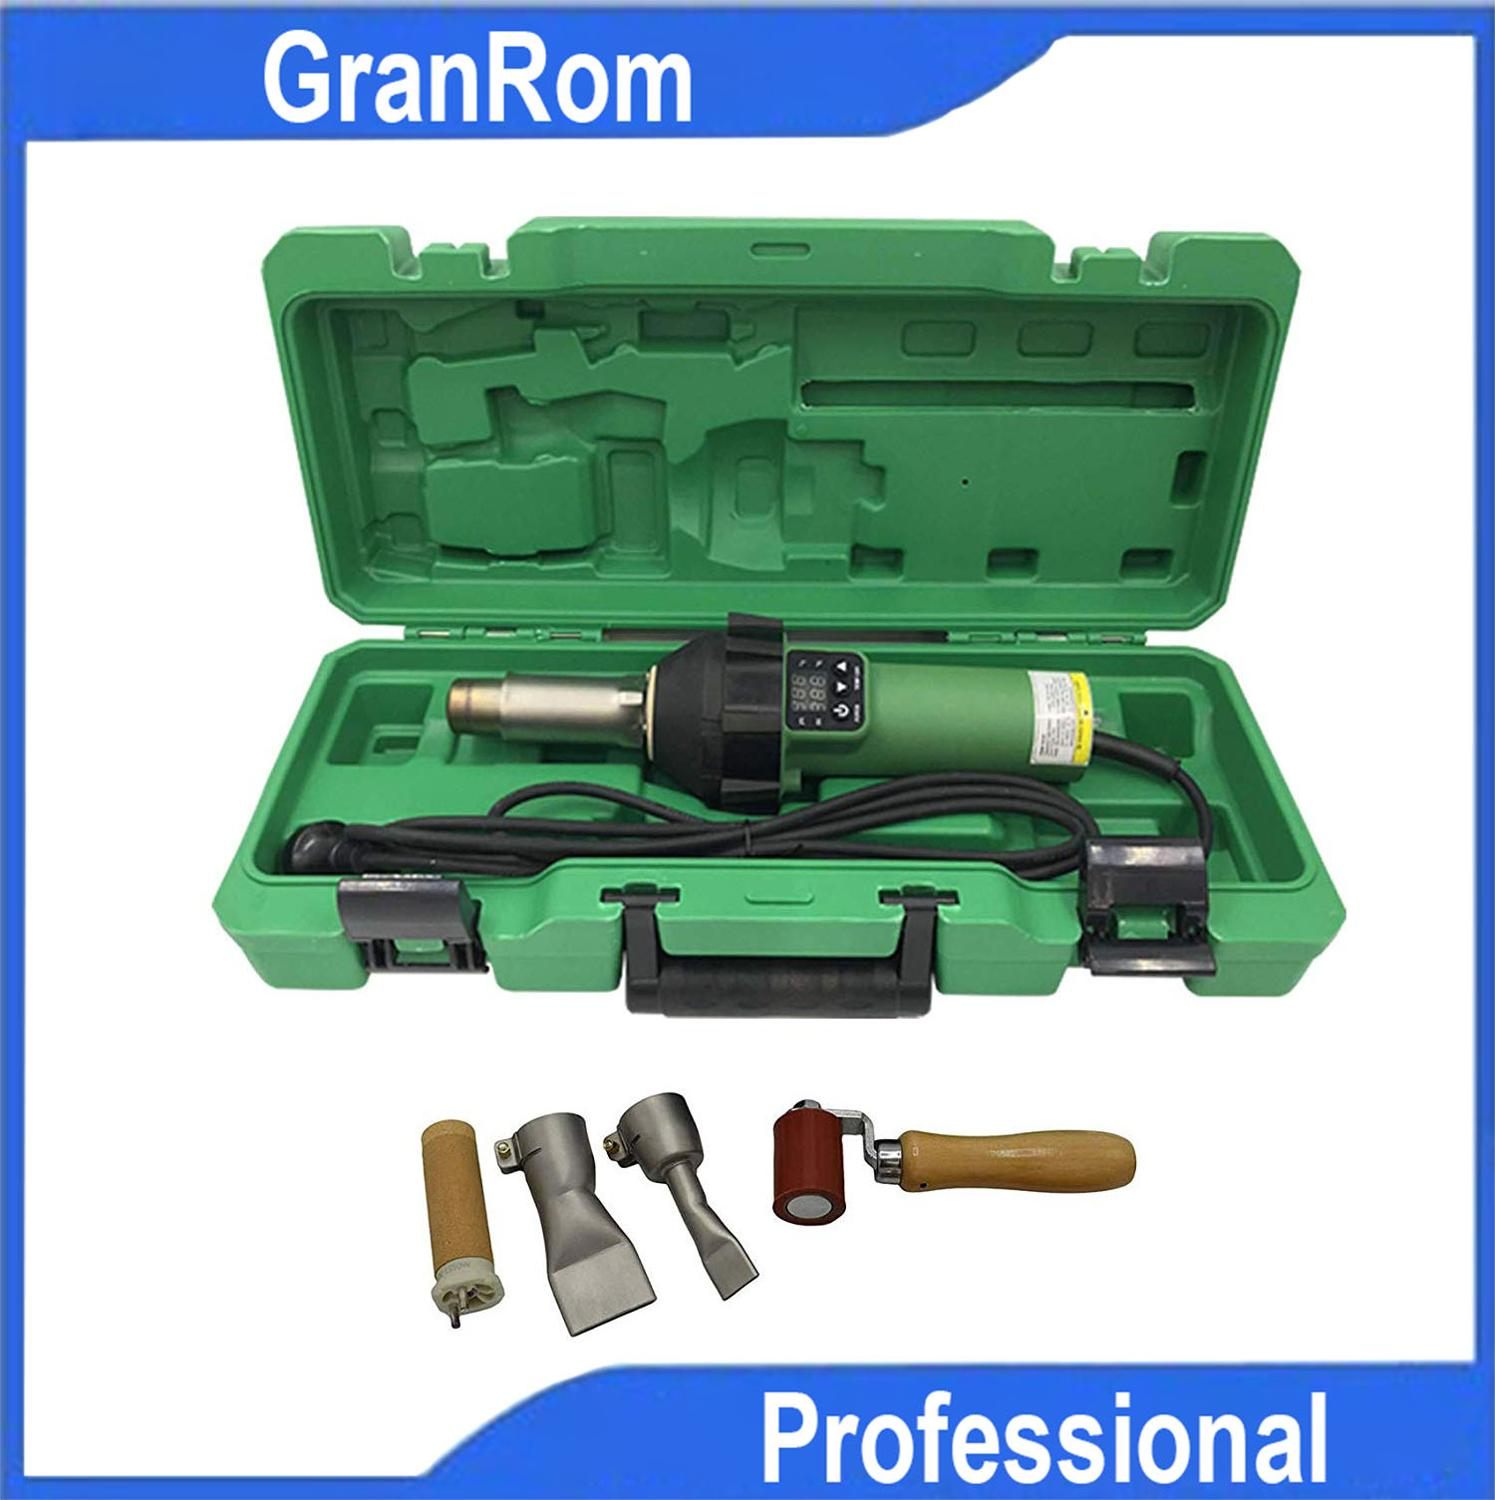 1600W Heating Gun Plastic Welding Gun Digitally Controlled Roofing Welding Hot Air Gun With Roofing Kit